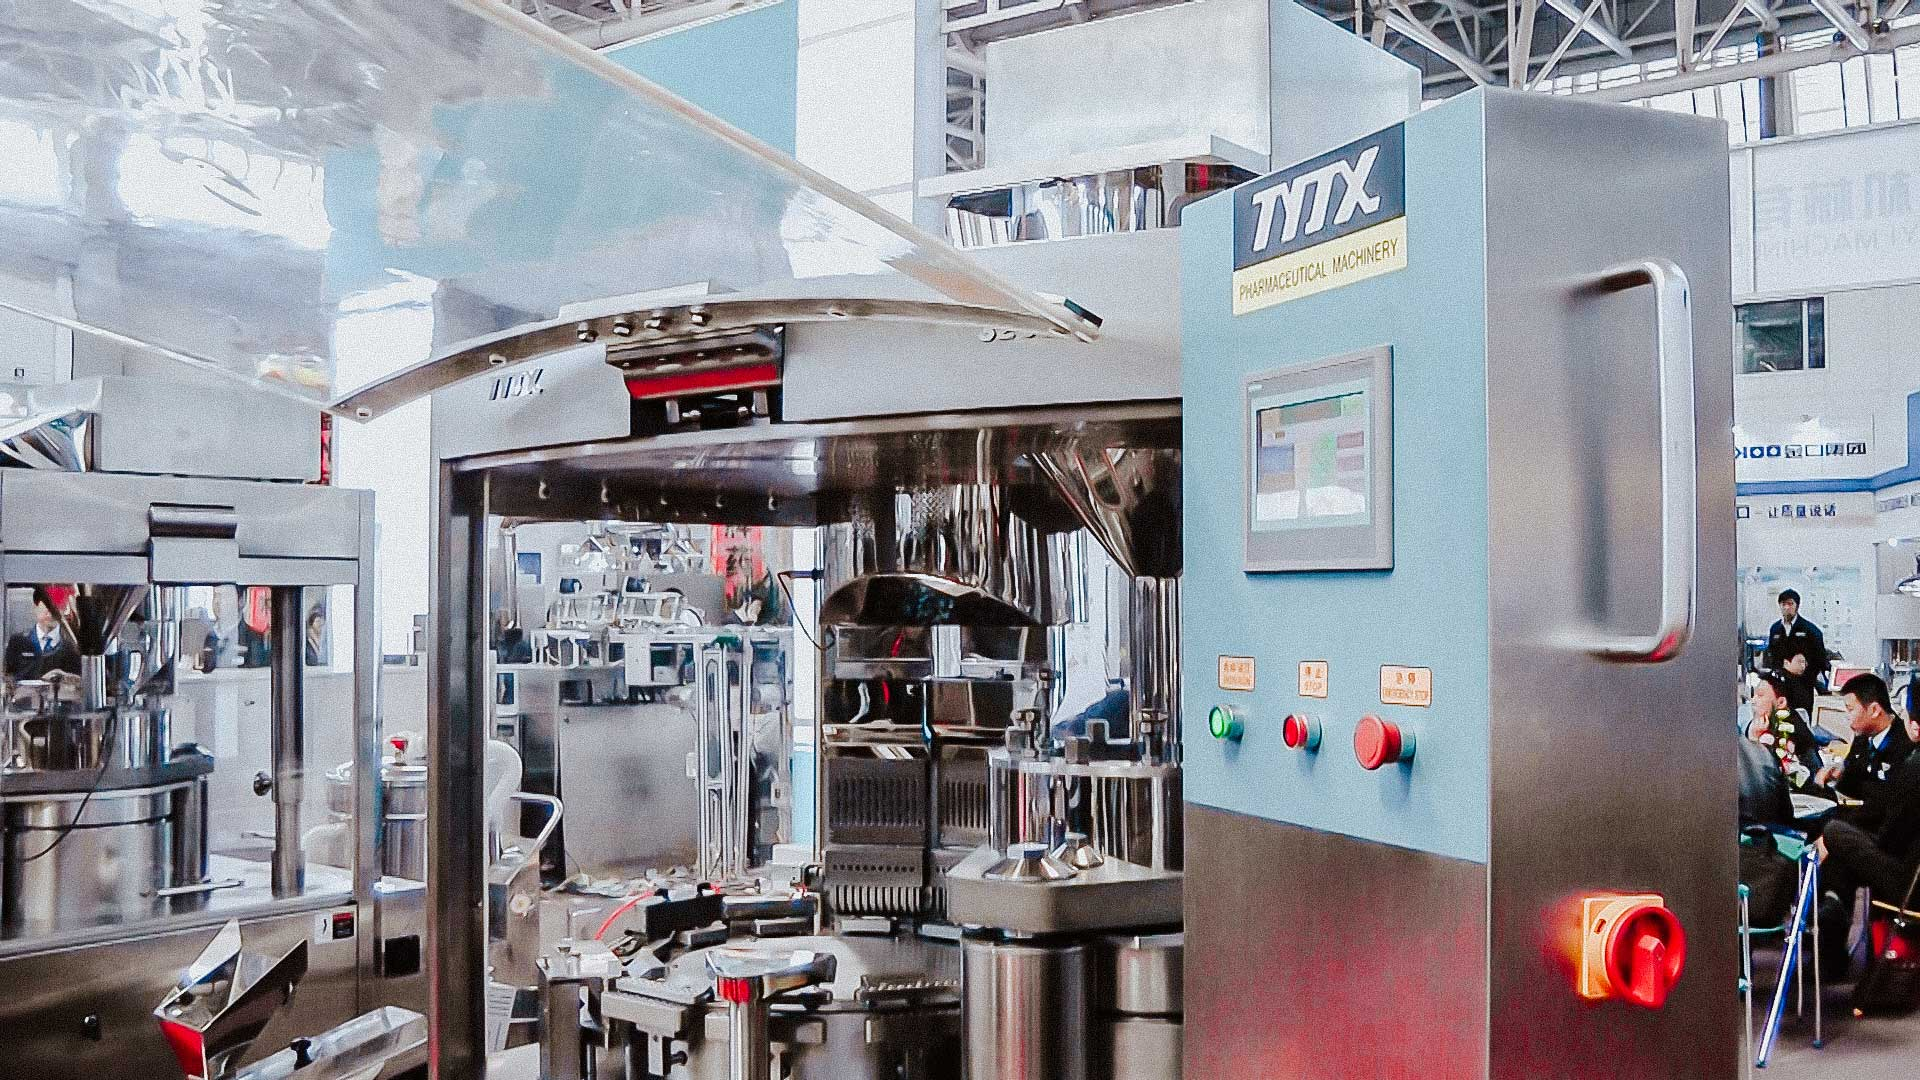 Pharmaceutical equipment for filling hard gelatin capsules with powder